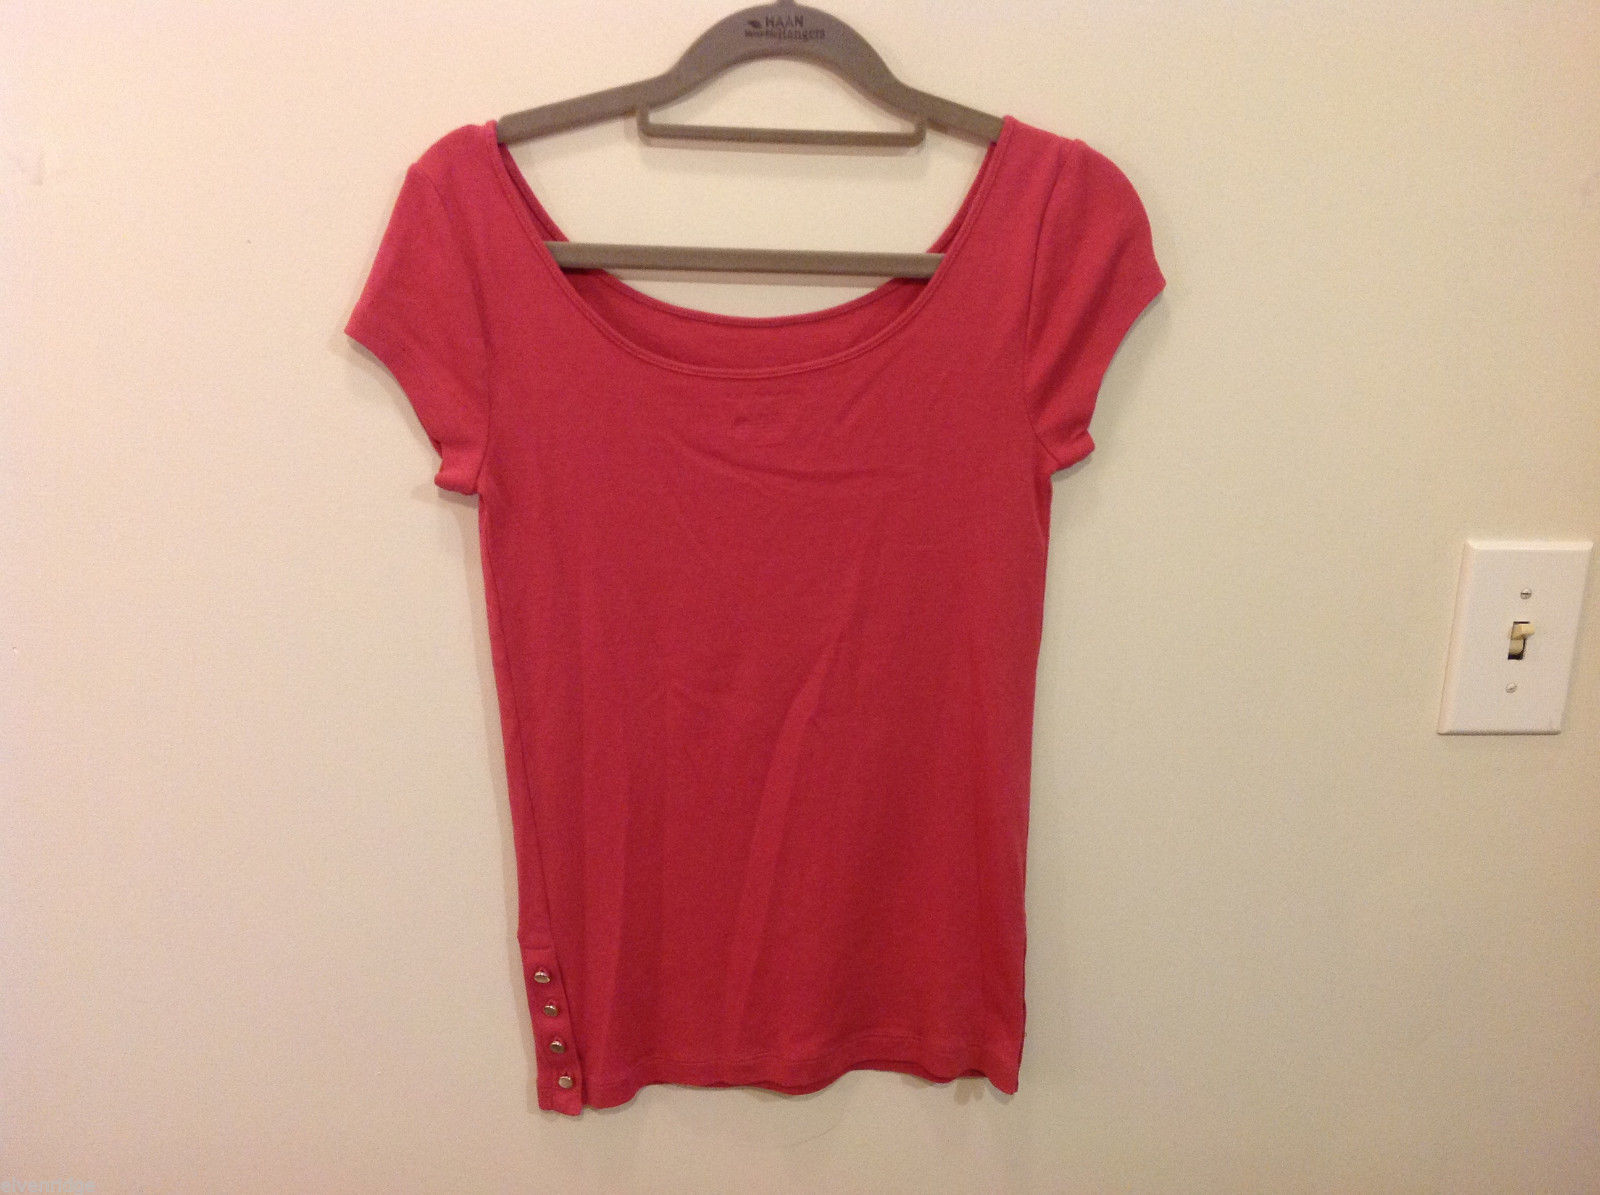 Ann Taylor 100% Cotton Crew Neck Pink Short sleeve Blouse Top, Size S